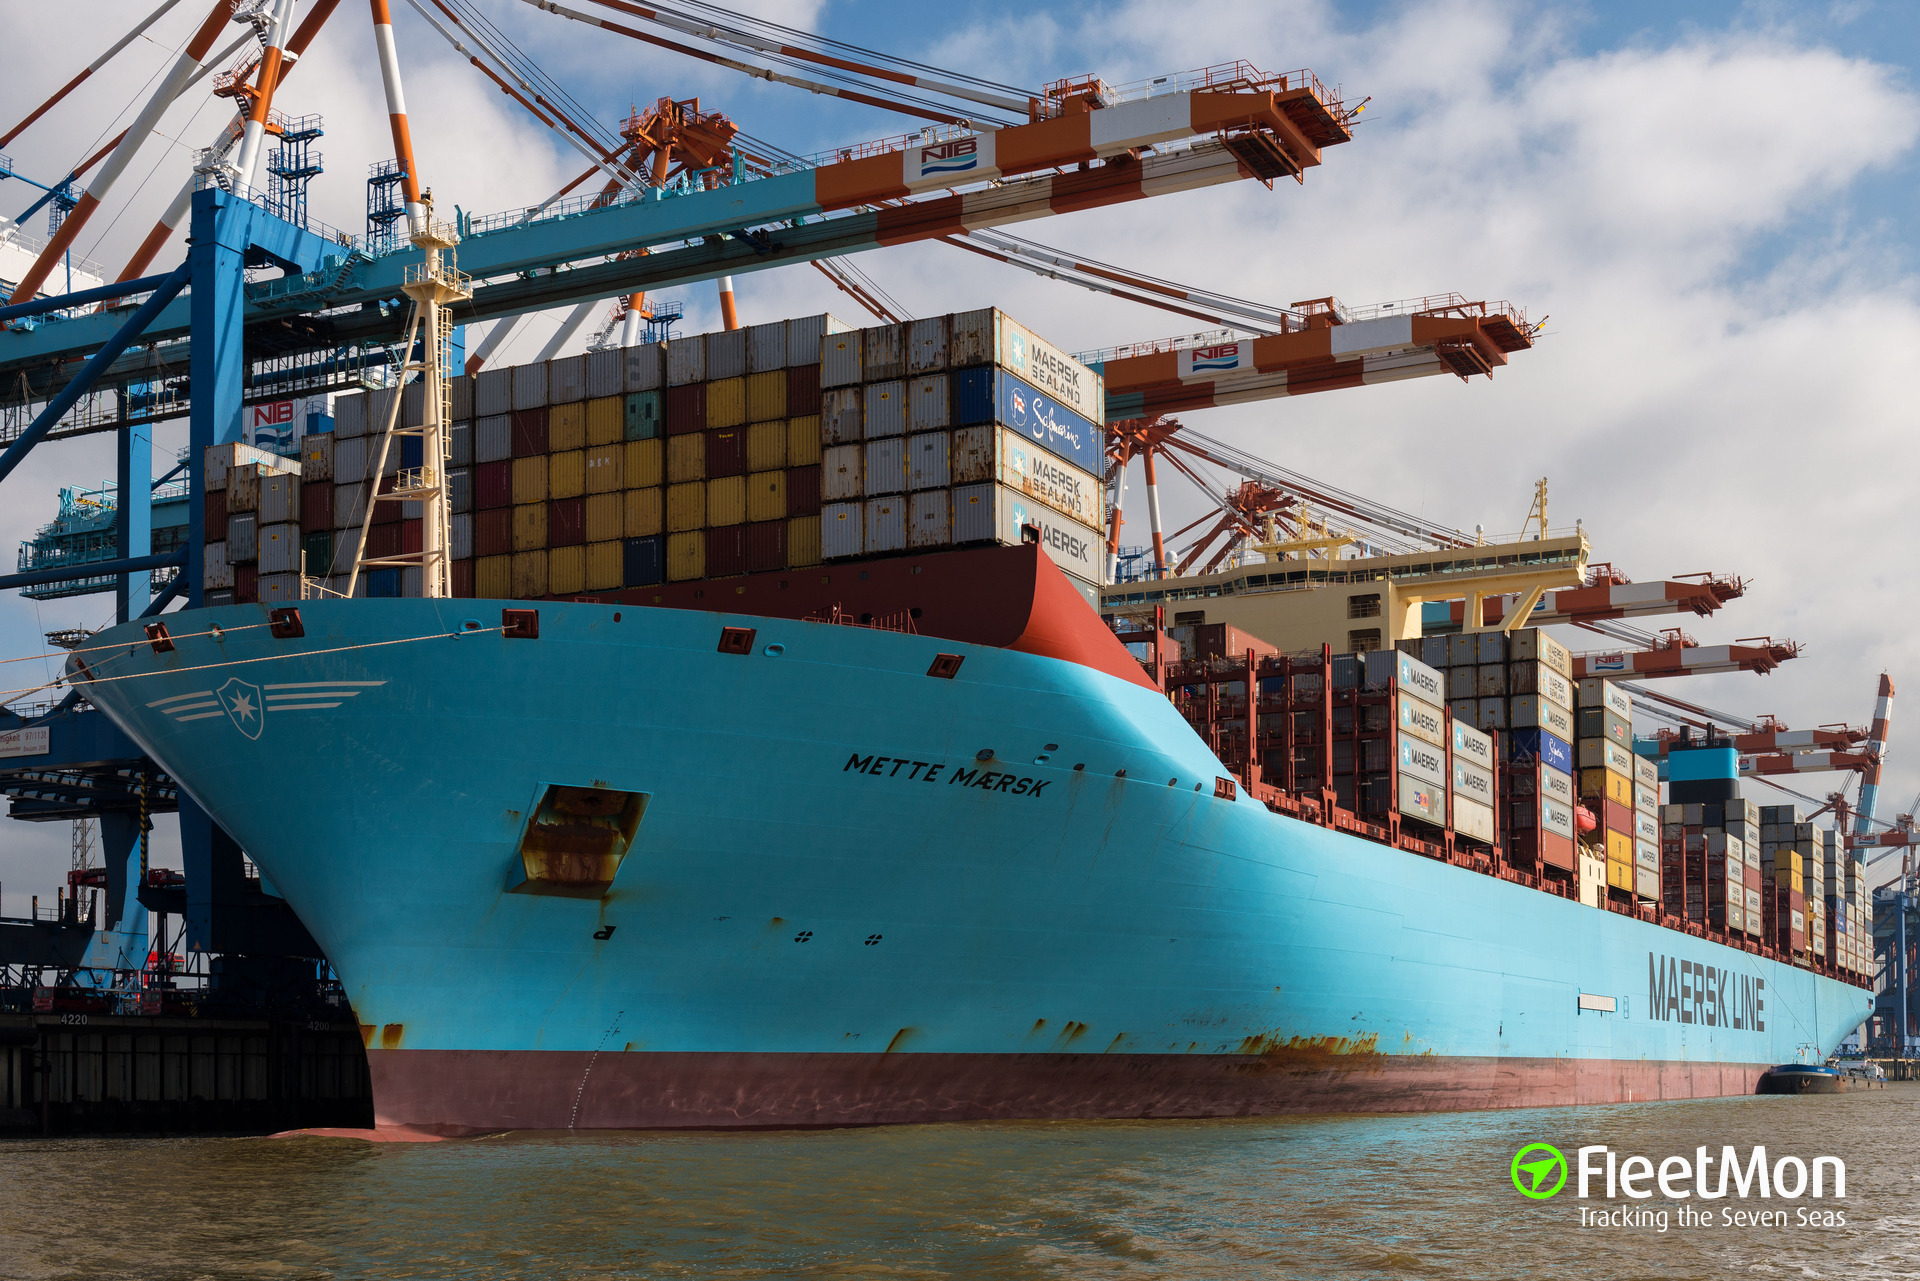 Mega container ship endangered by speed boat on Elbe